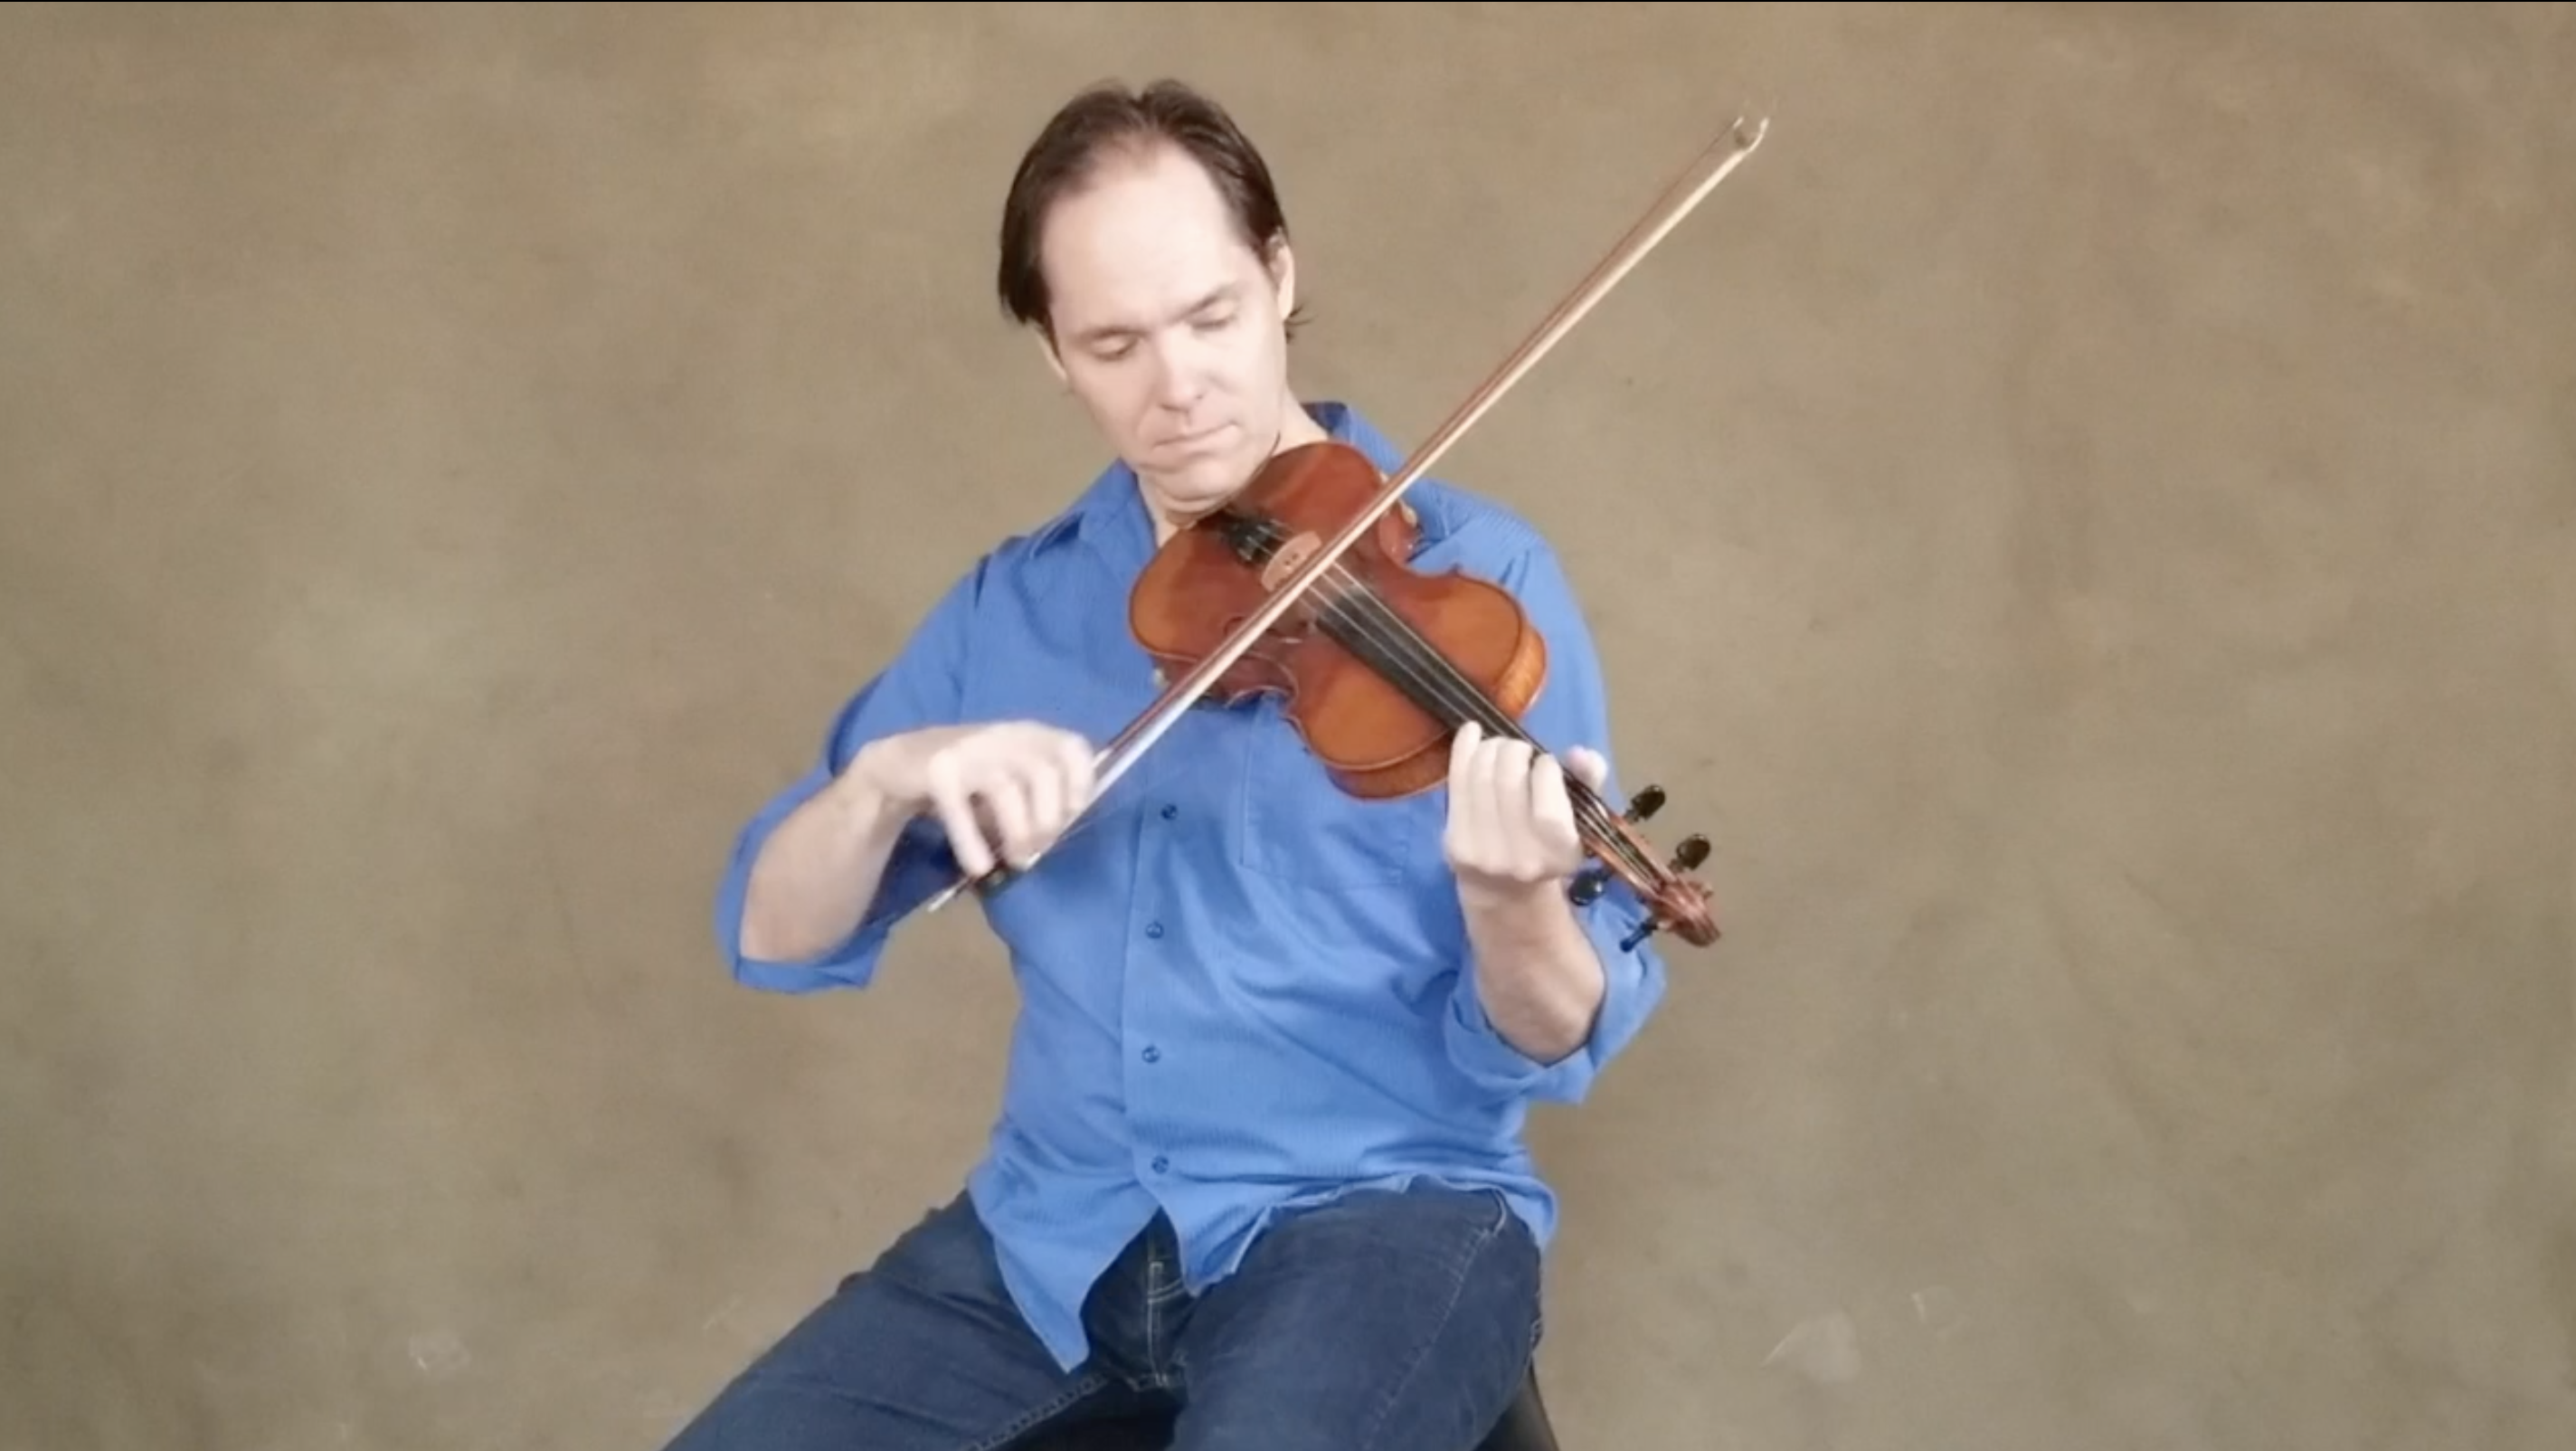 Putting it All Together - Improvising in Fiddle Tunes